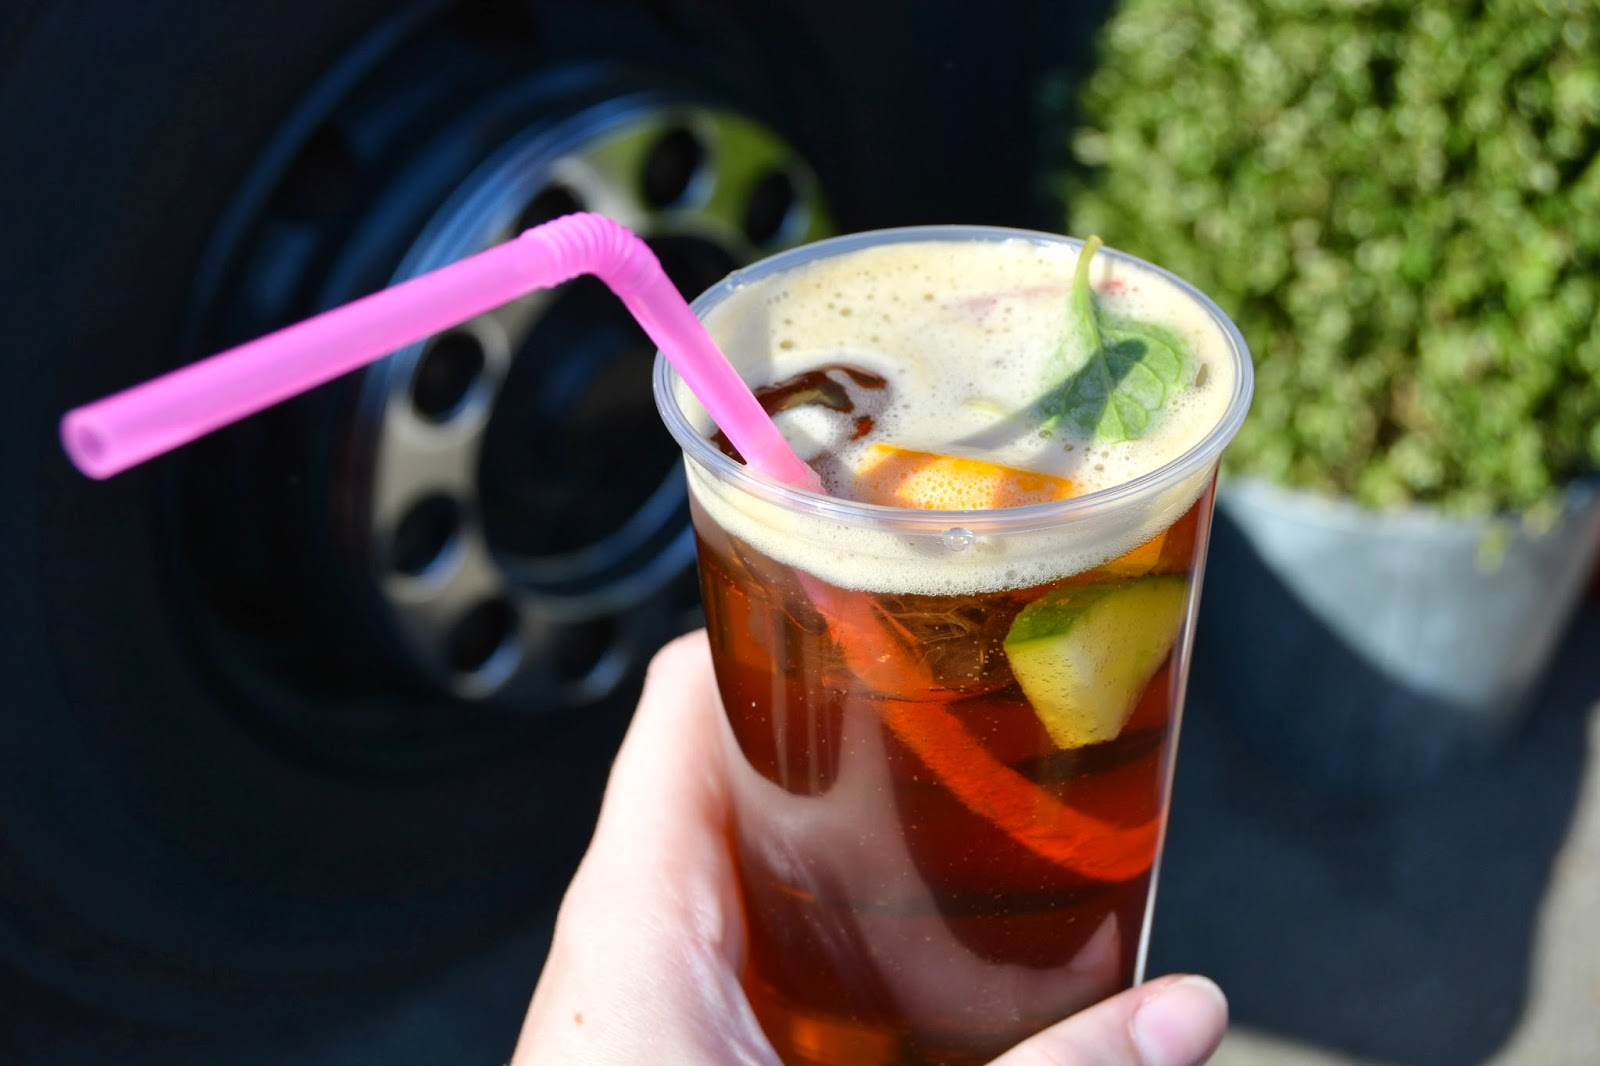 Pimms at the london classic car boot sale